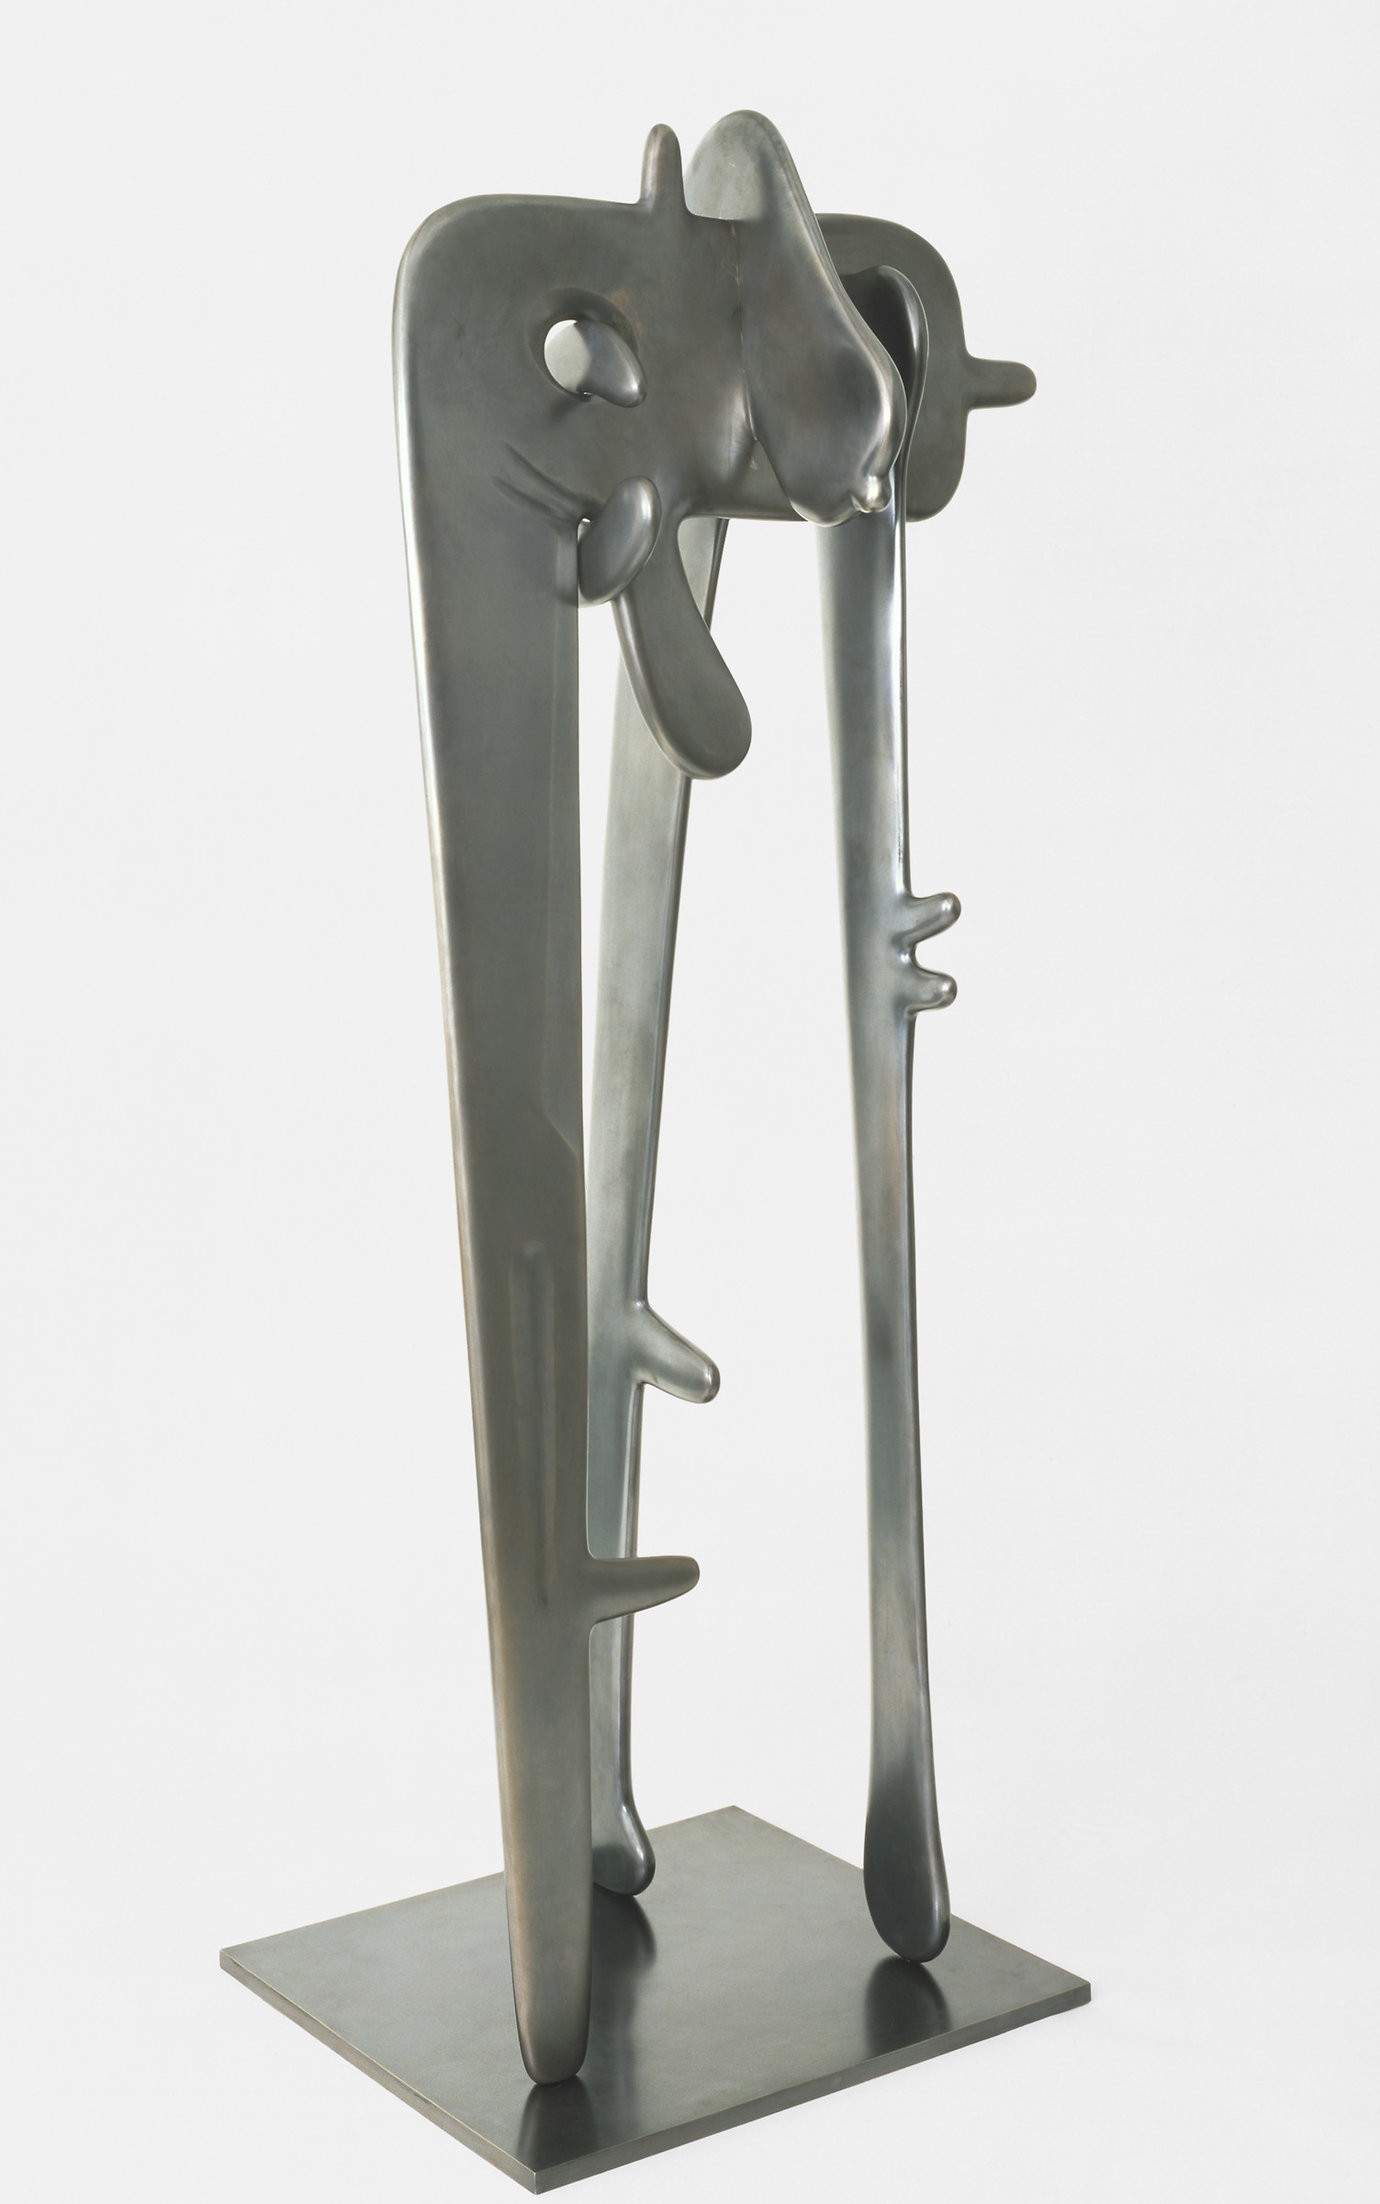 ", 1947. Bronze, 78"" x 33"" x 24"" (198.1 cm x 83.8 cm x 61 cm), 4 elements overall installed."